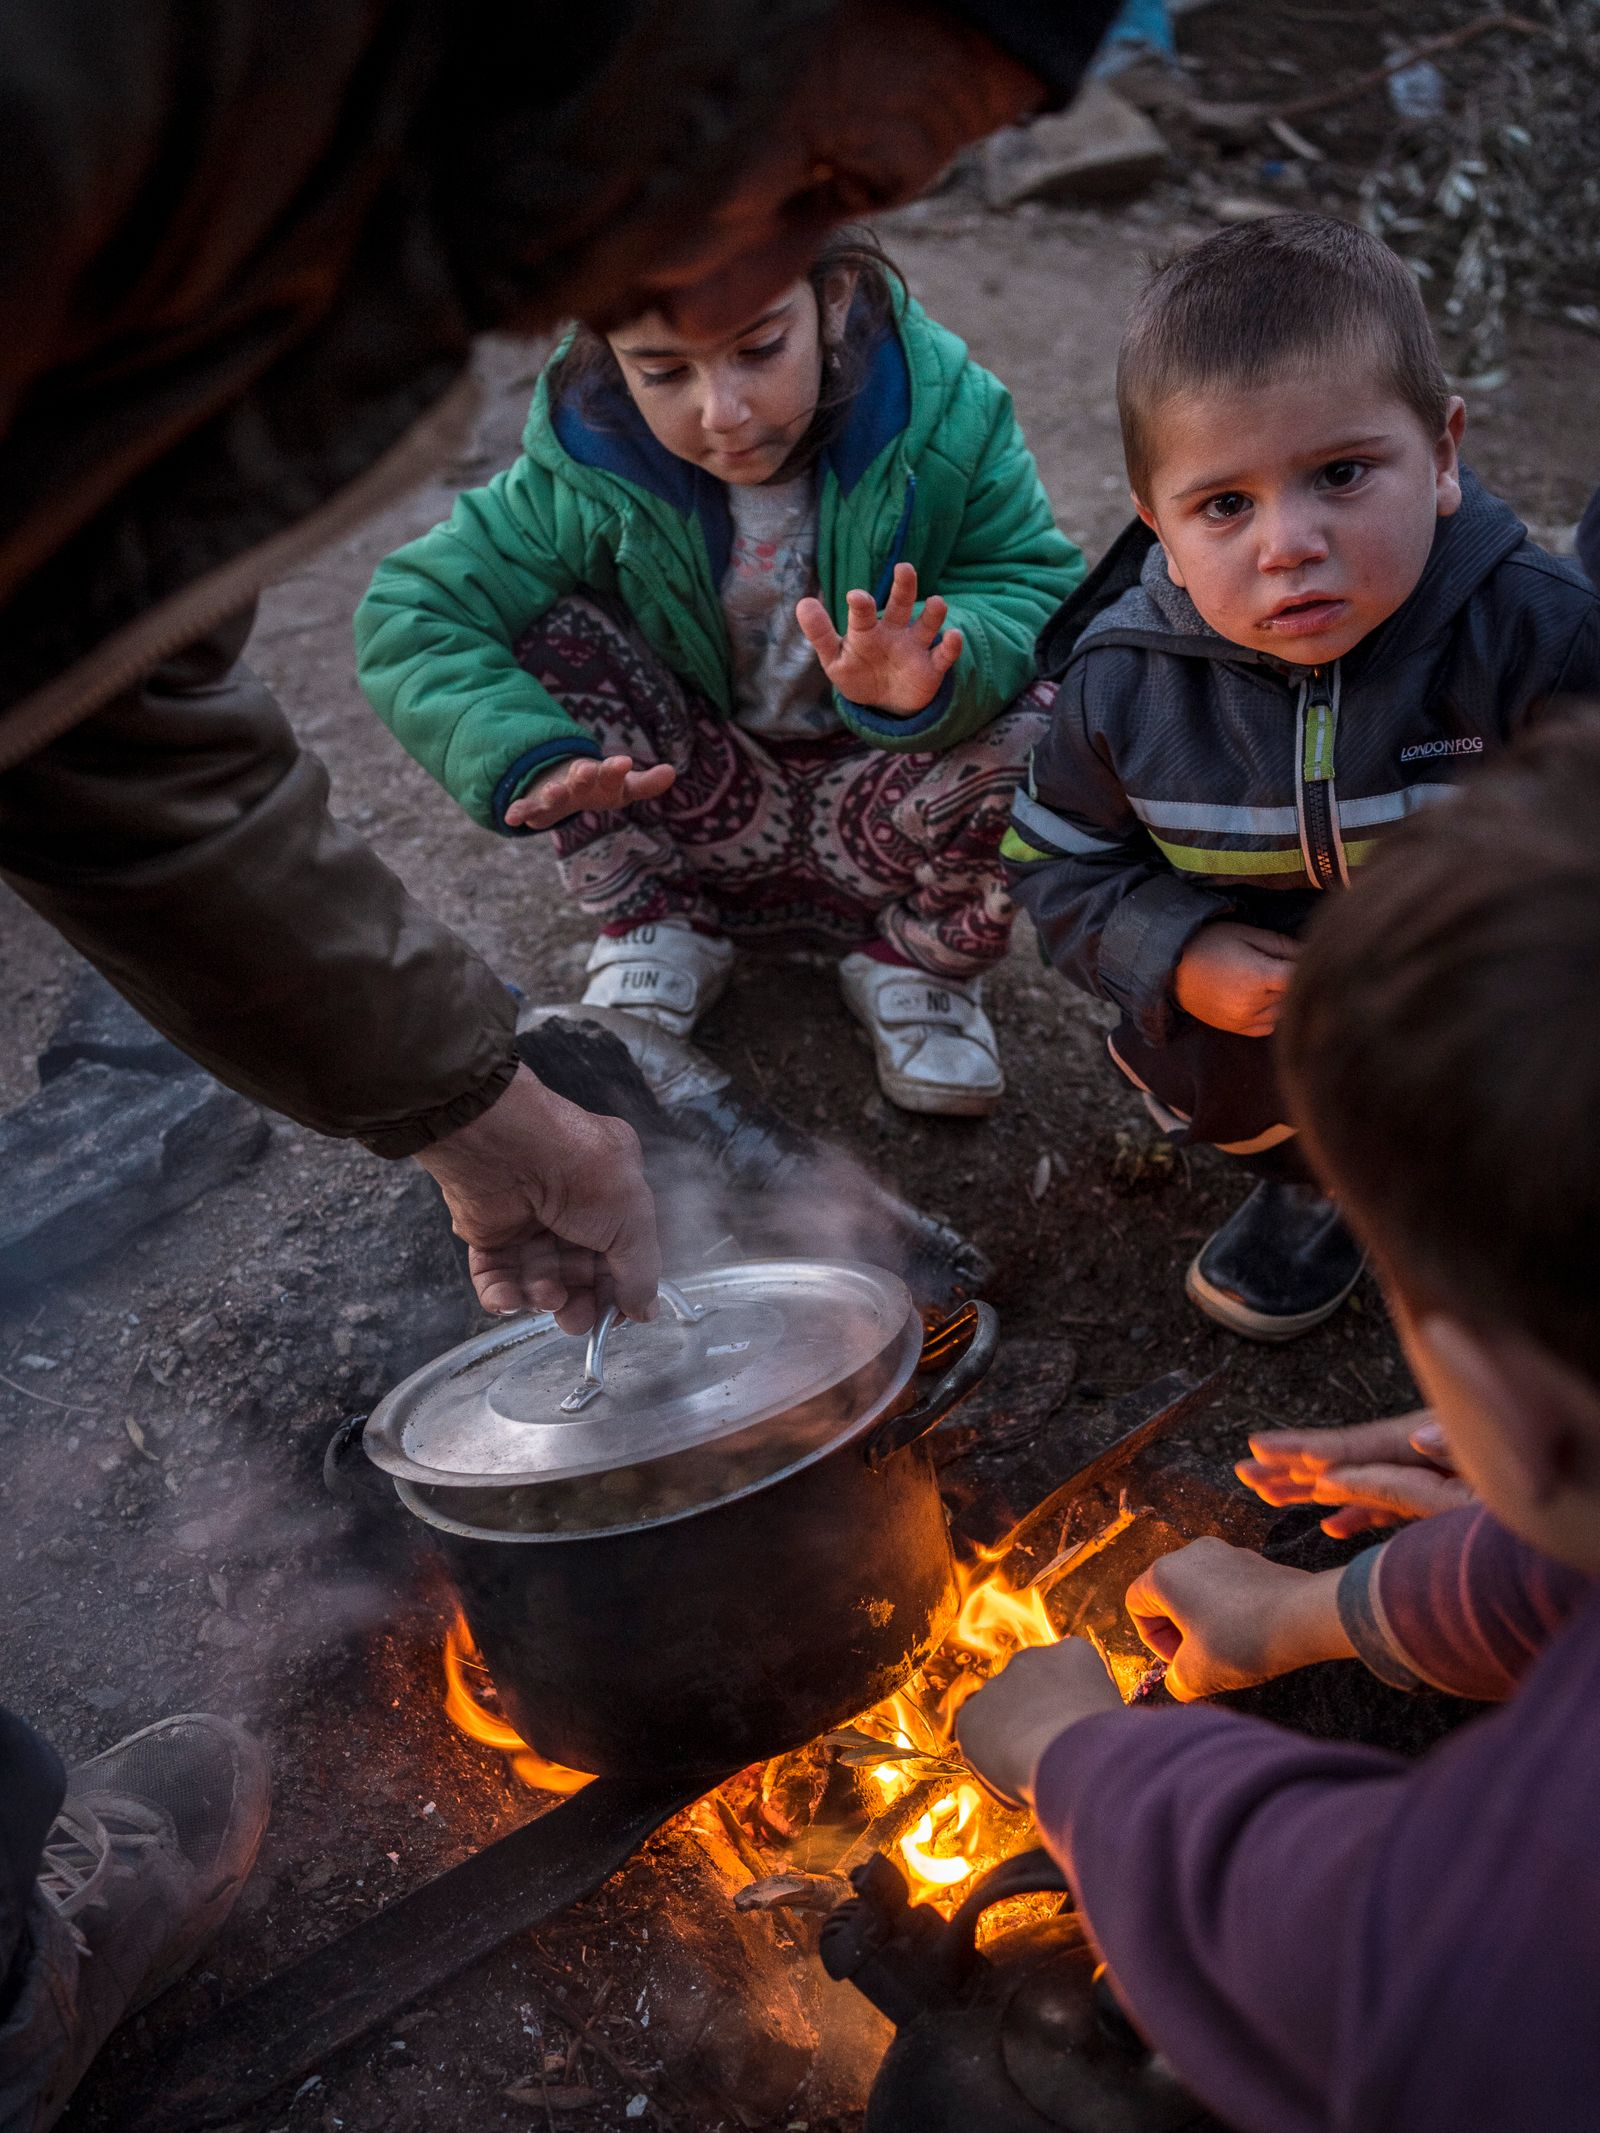 Kids at overcrowding in Moria Greek camp for Migrants and refugees